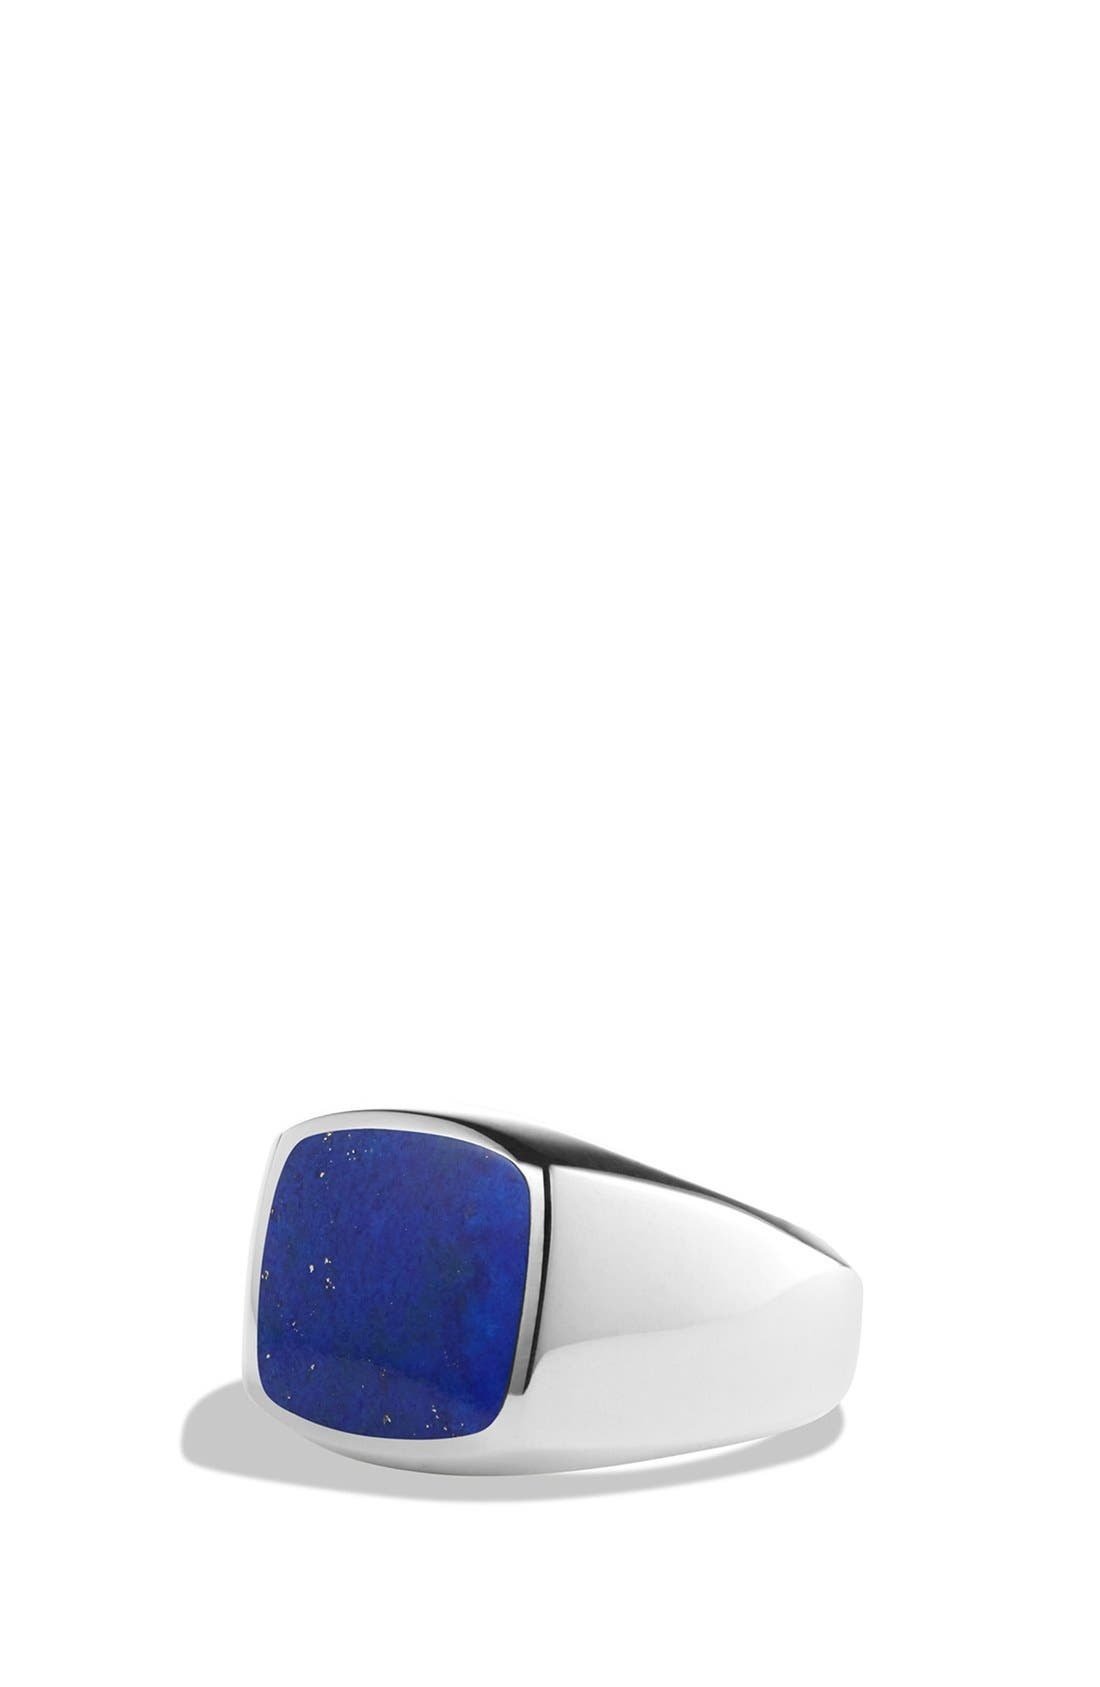 'Exotic Stone' Signet Ring in Silver,                             Main thumbnail 1, color,                             Lapis Lazuli